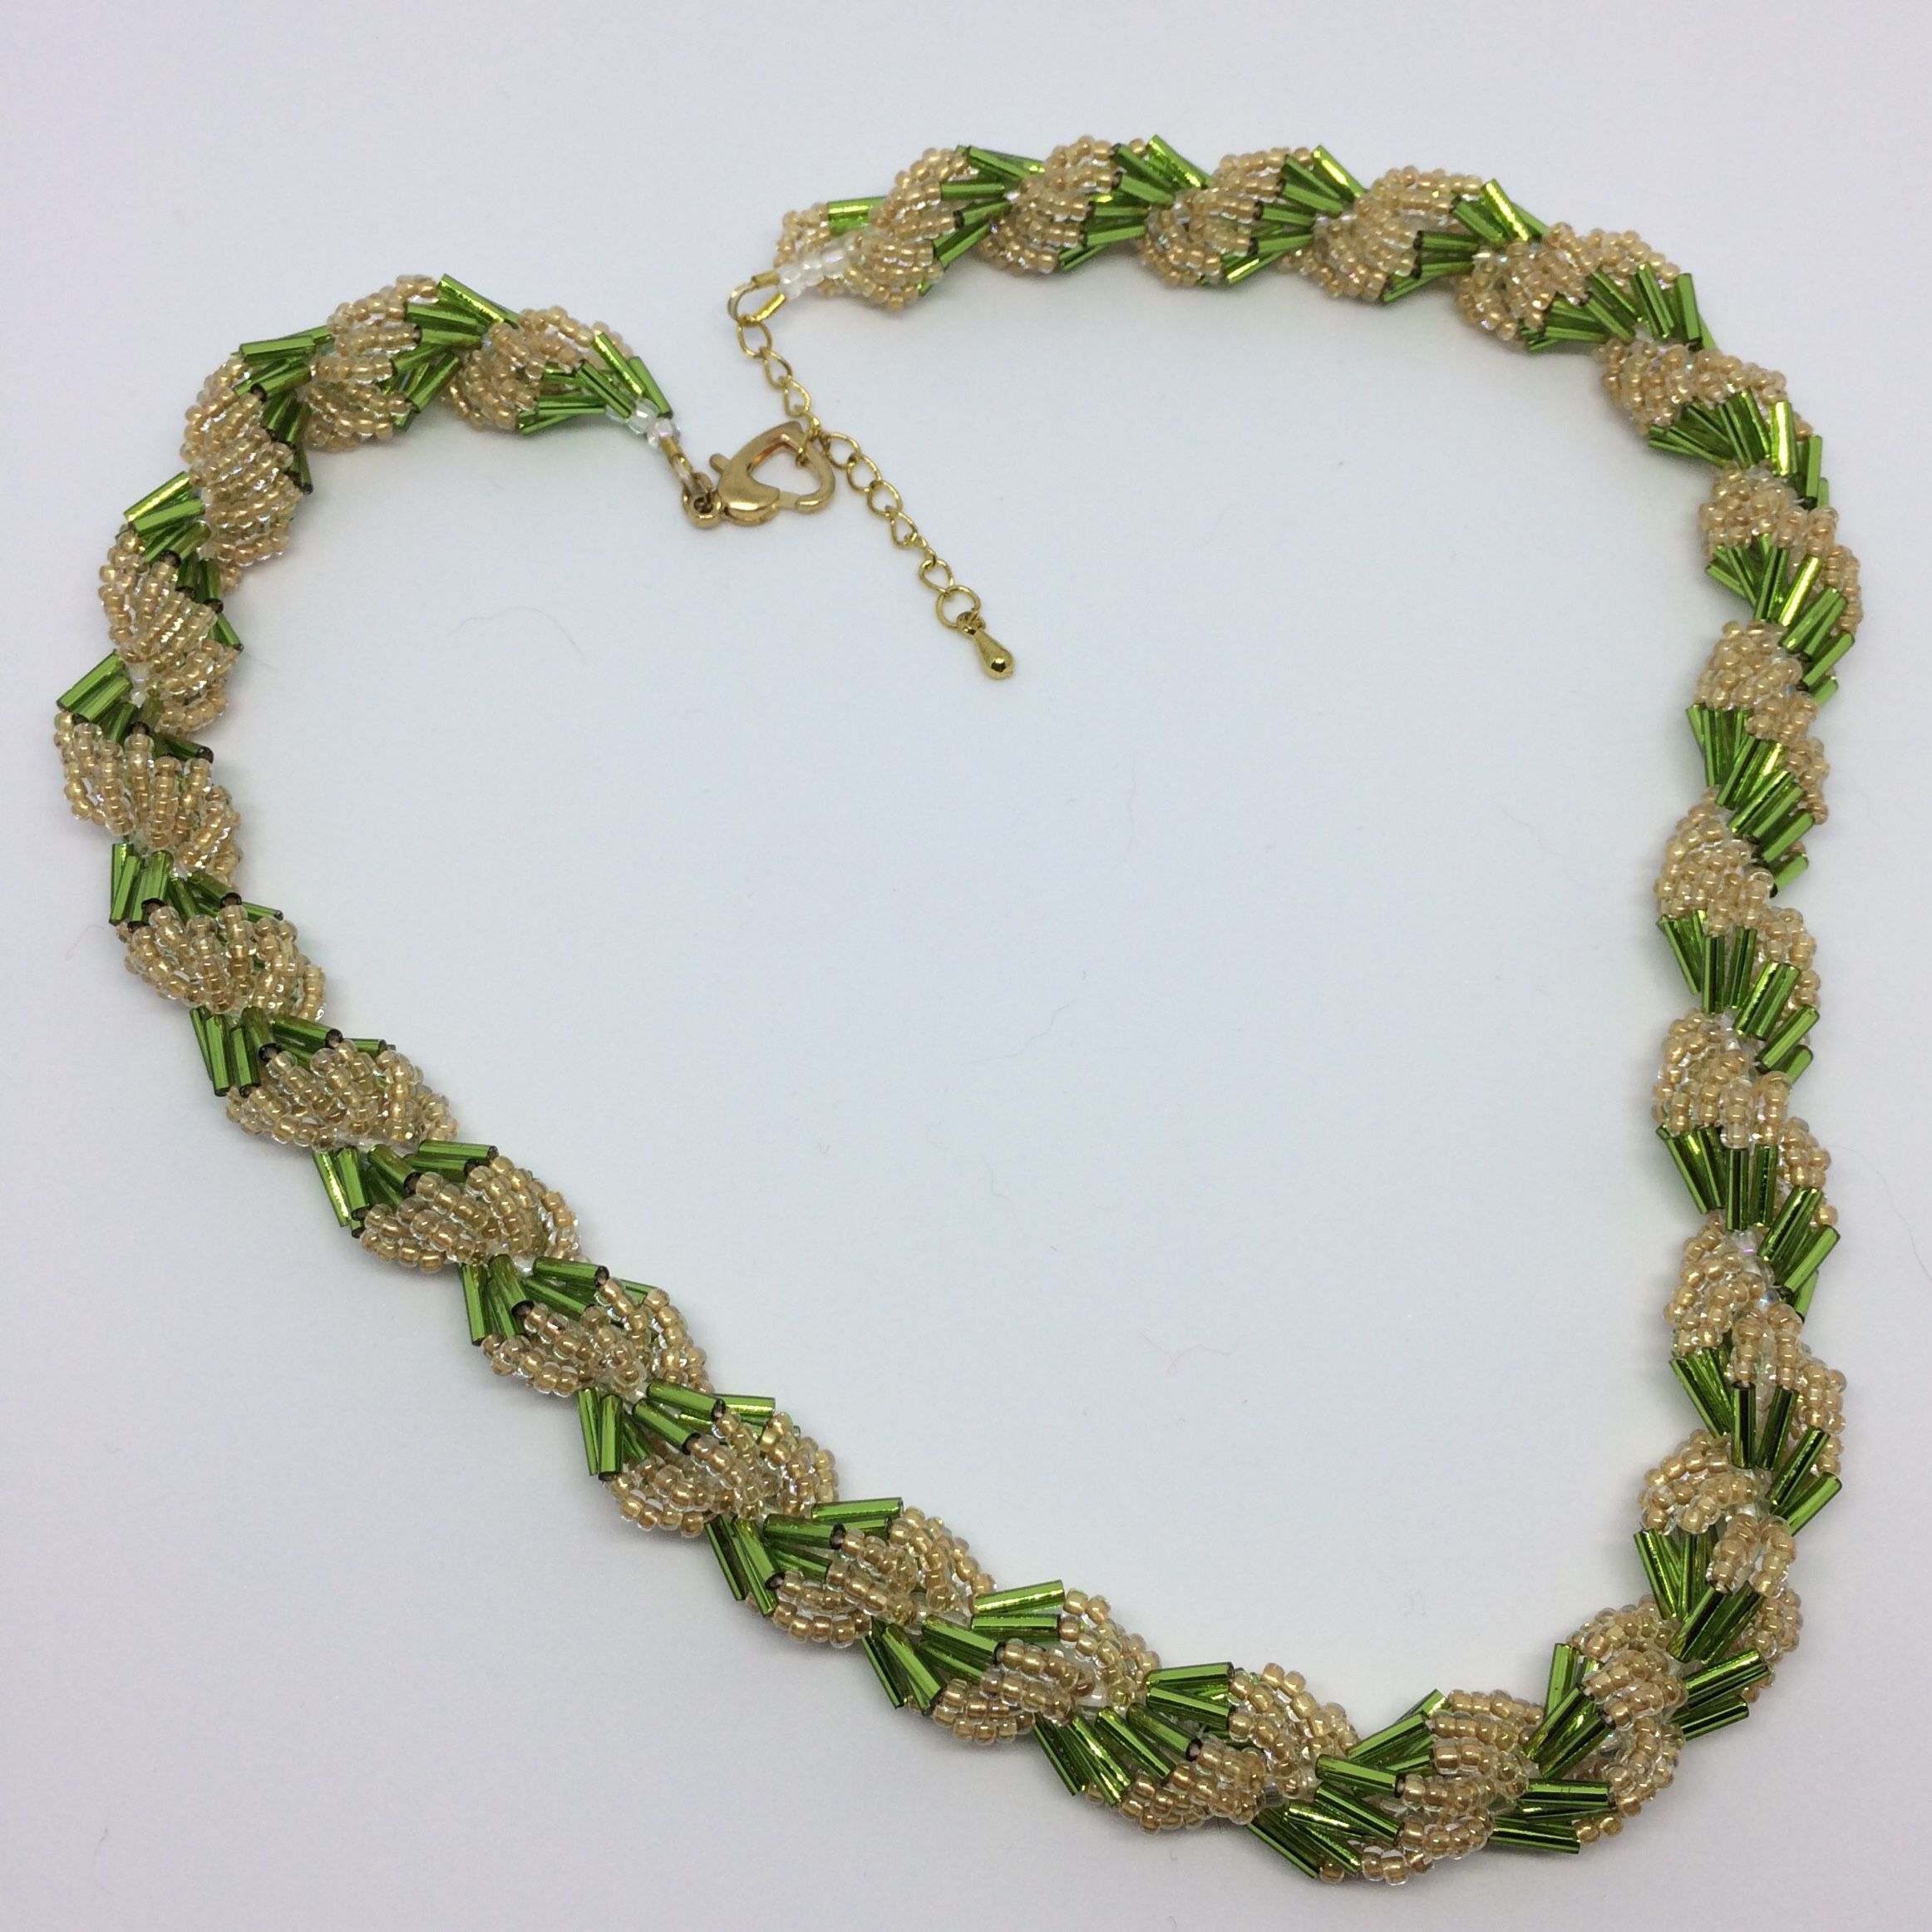 Olive Green Bugles Entwine With Matte Gold Seed Beads In